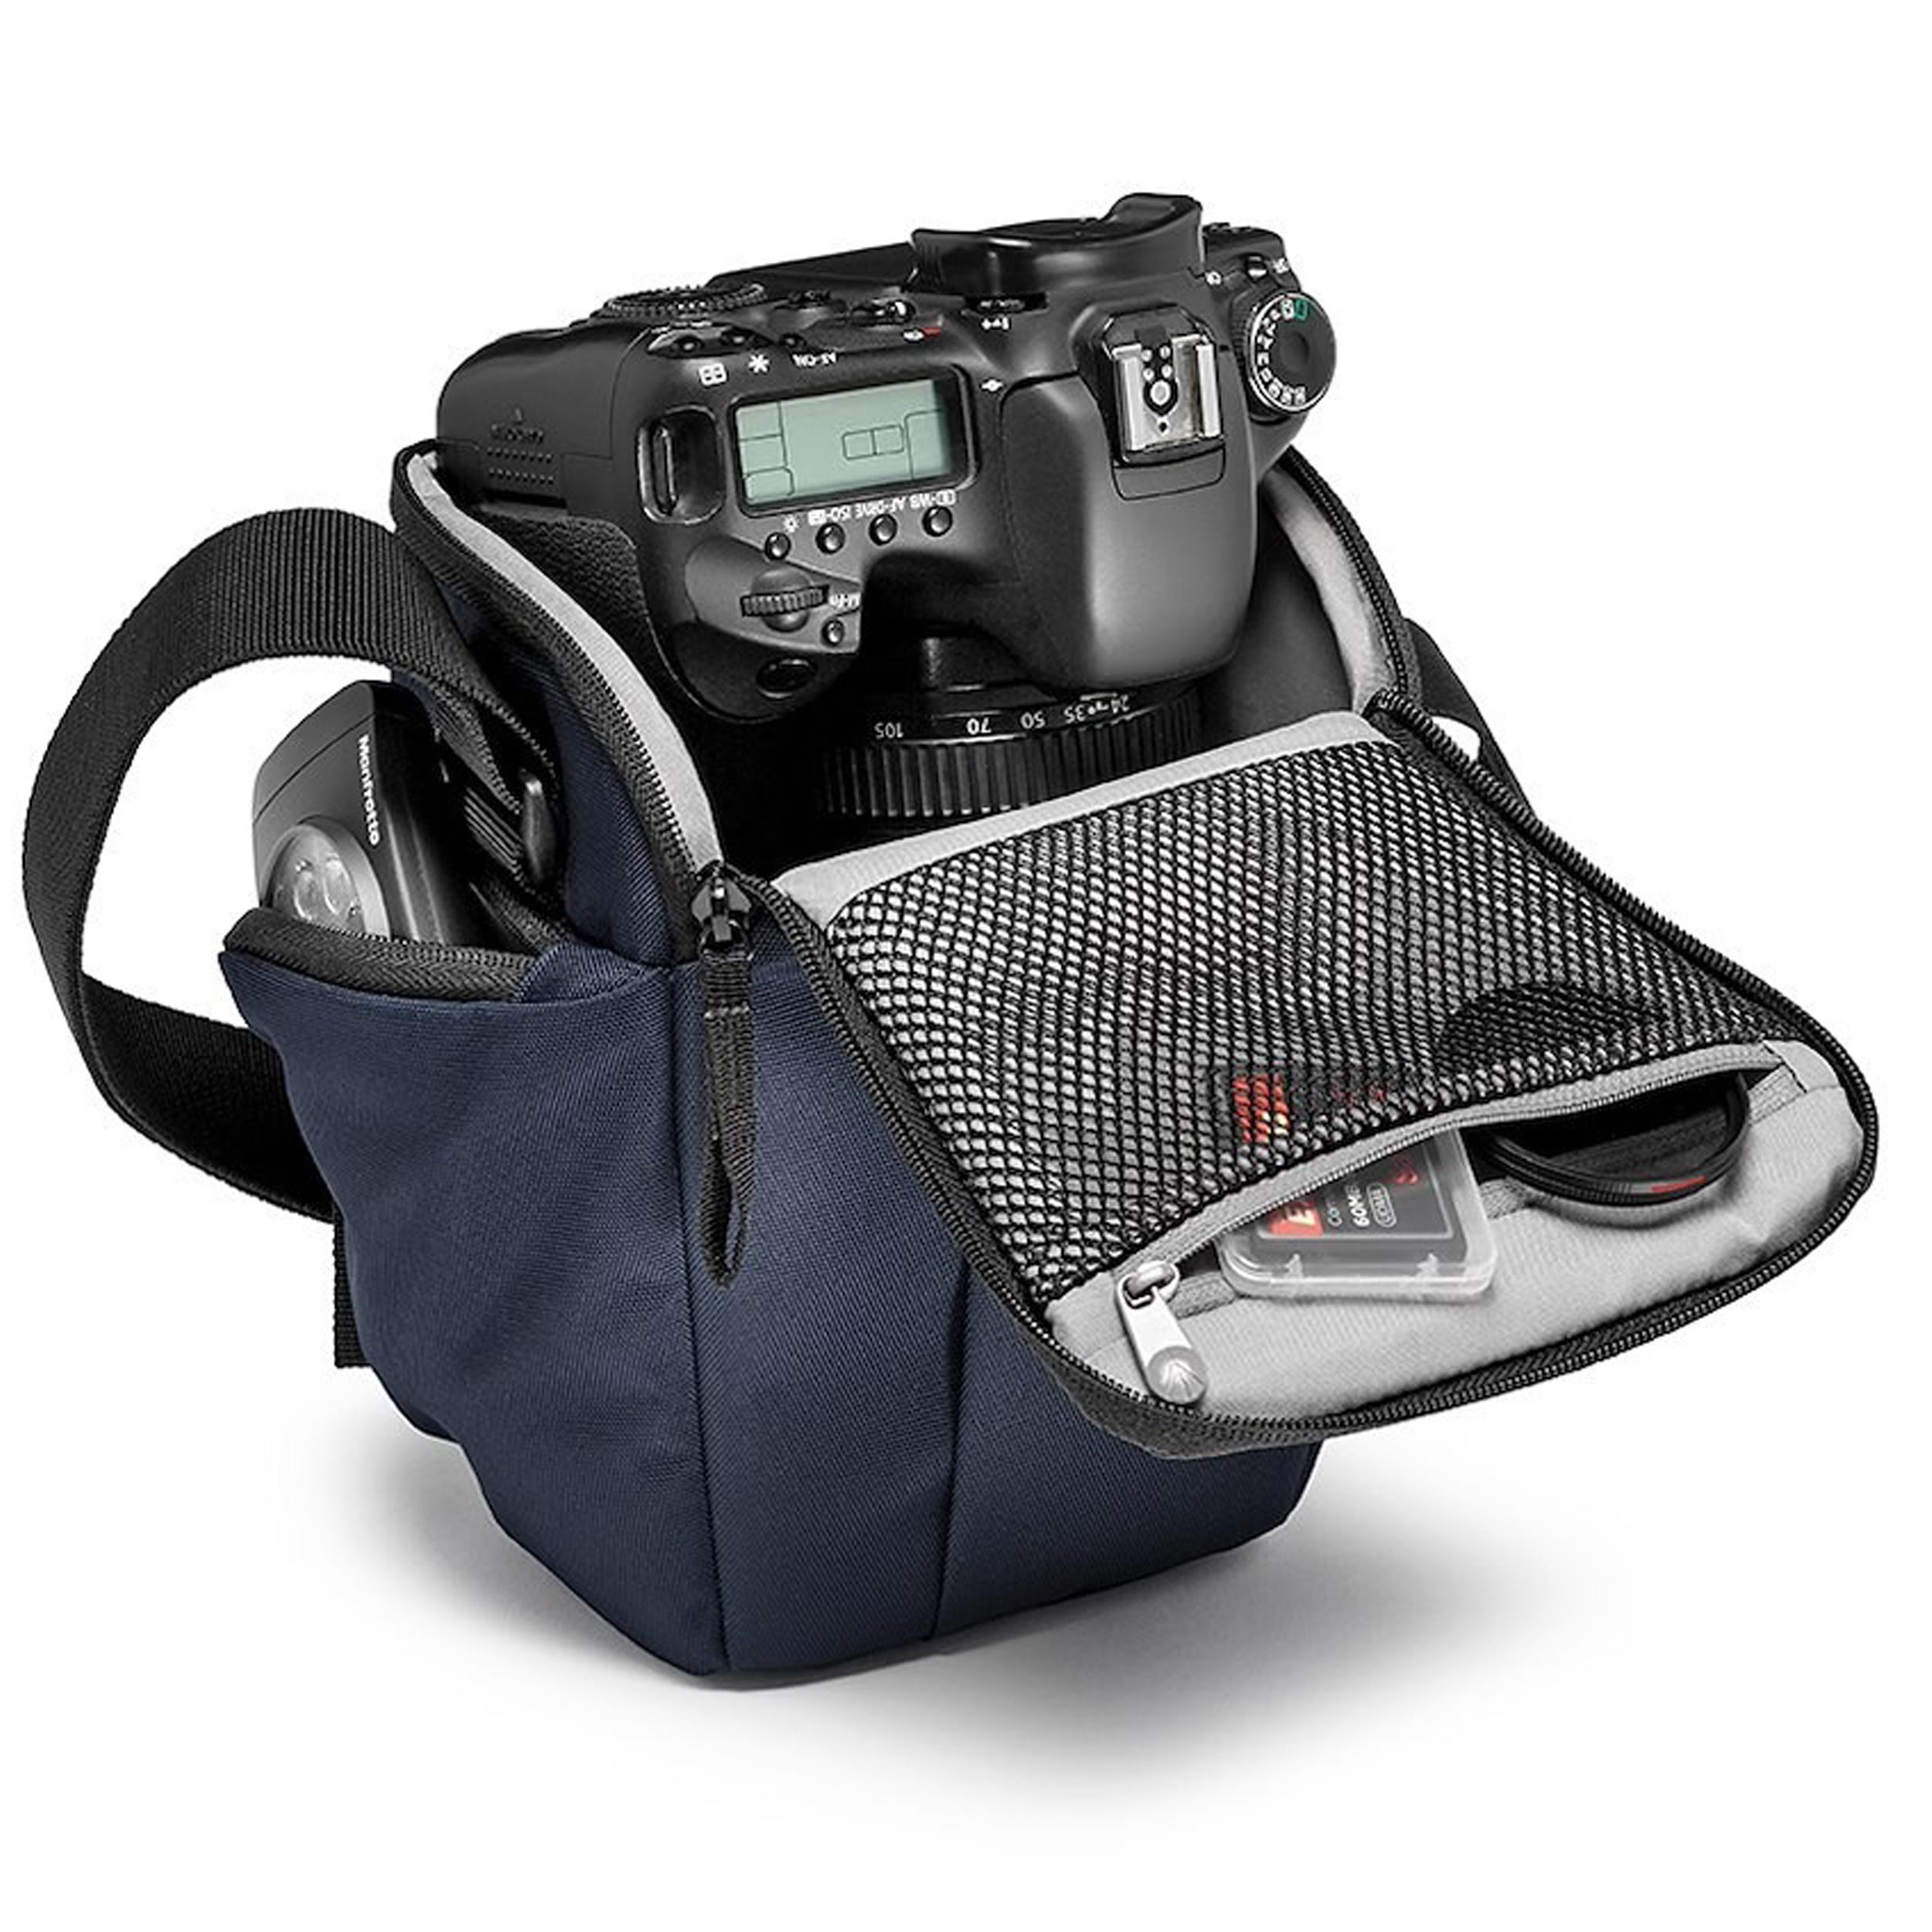 Best bag for photographers Best Camera Bags 2018: 10 top bags for photographers